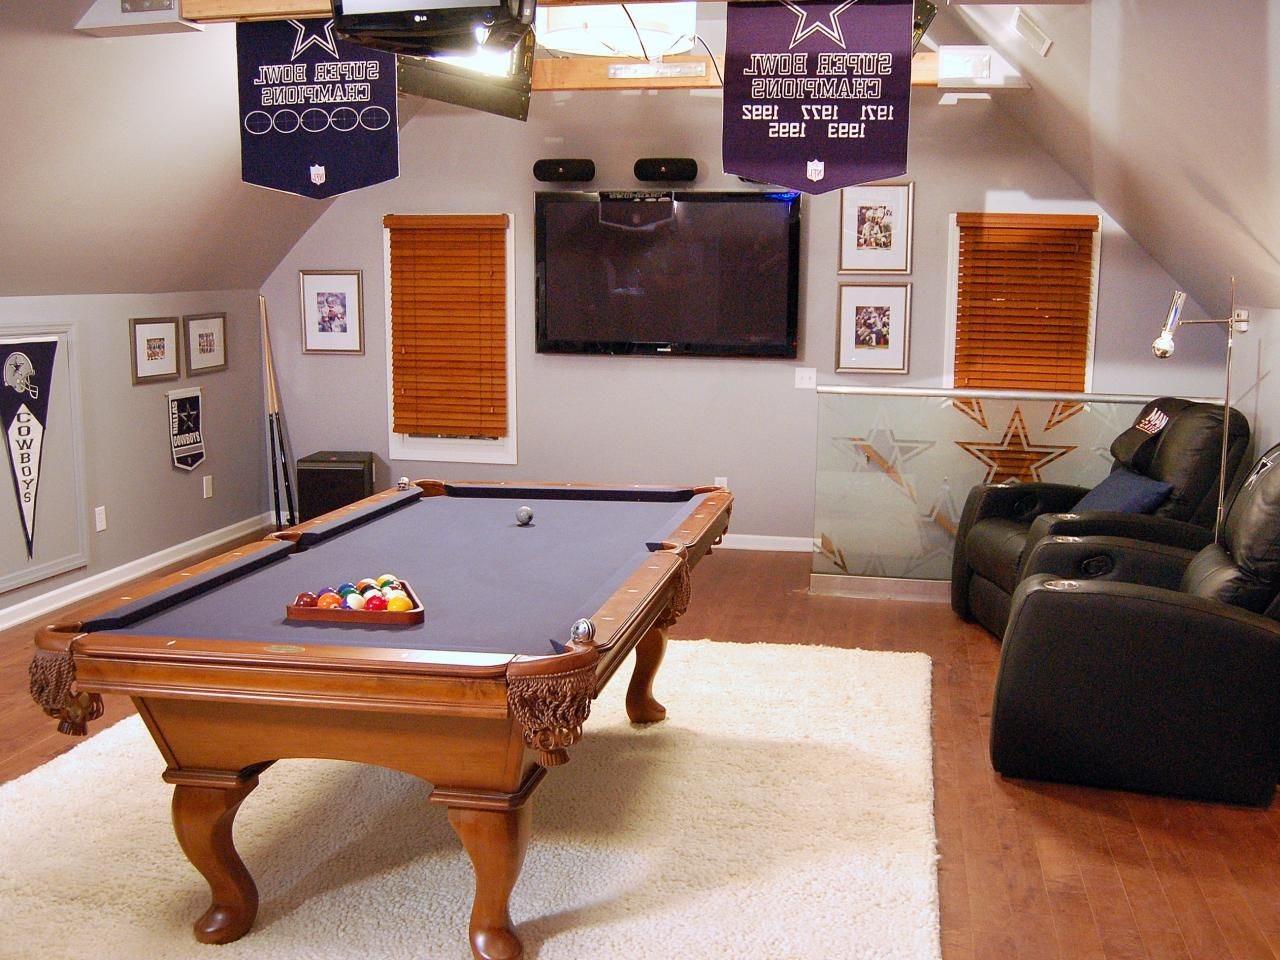 Man Caves Pool Tables And Bars Best Man Caves Pool Table And - Man cave garage bar